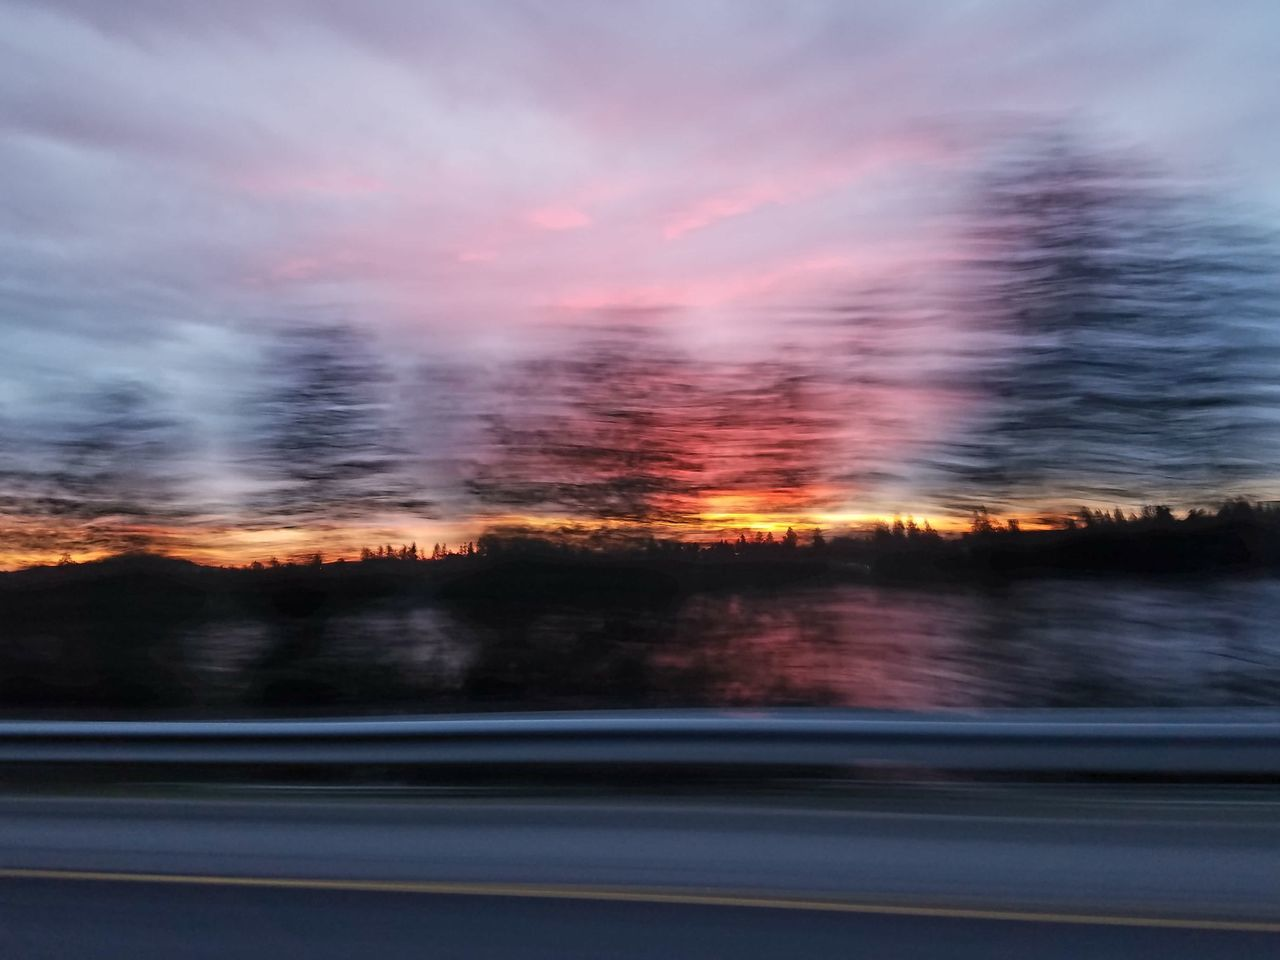 Beauty In Nature Blurred Motion Blurry Blurry Sunset Day EyeEmNewHere Nature No People Outdoors Scenics Sky Sunset Tranquility Tree Cellphone Photography No Edit/no Filter Live For The Story Out Of The Box The Great Outdoors - 2017 EyeEm Awards Place Of Heart